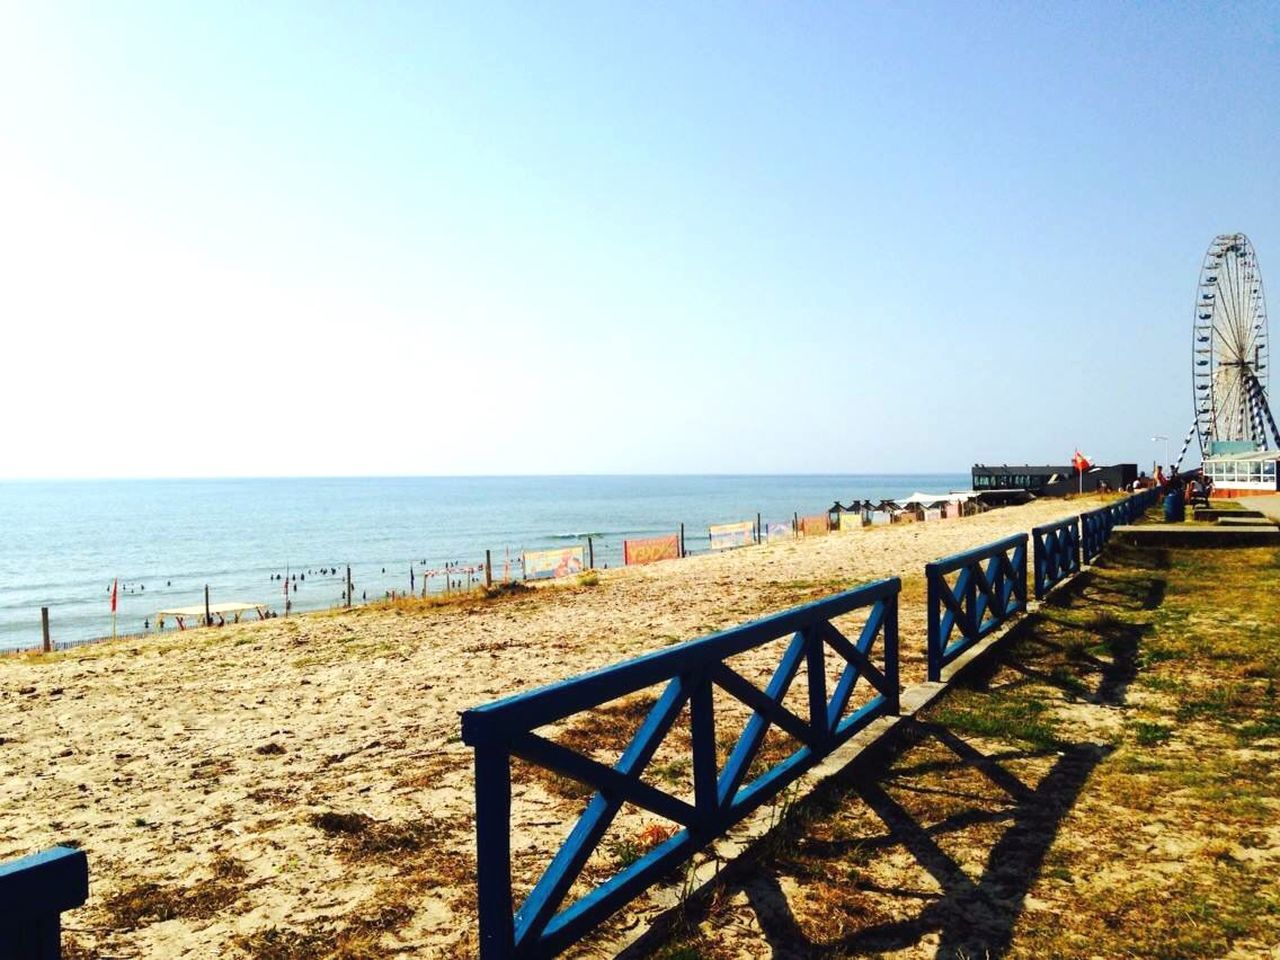 sea, beach, horizon over water, water, nature, tranquil scene, clear sky, tranquility, scenics, sunlight, day, copy space, sand, outdoors, beauty in nature, vacations, summer, sky, no people, blue, travel destinations